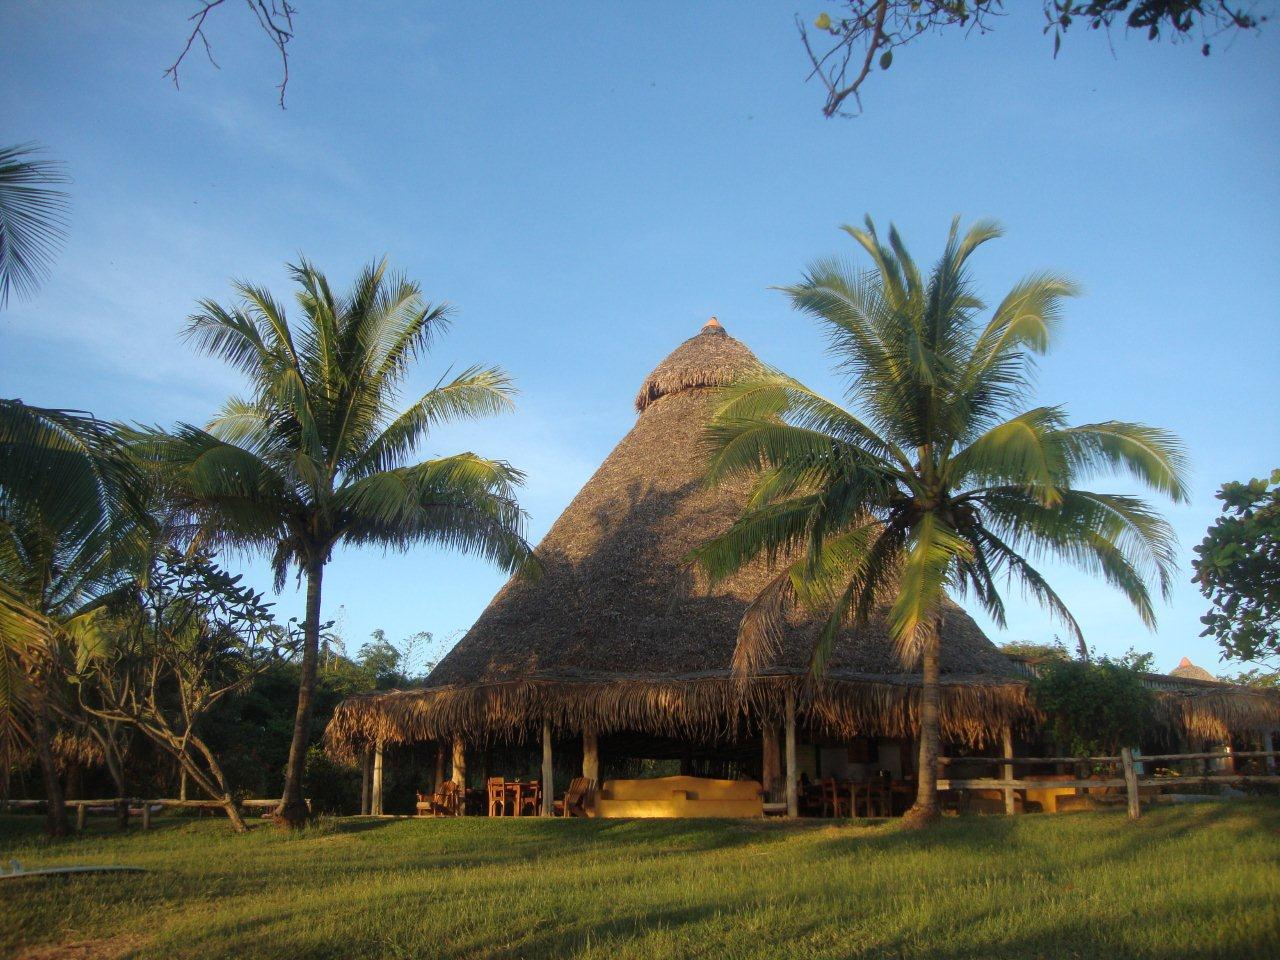 thatched roof palapa Hotel Playa Negra